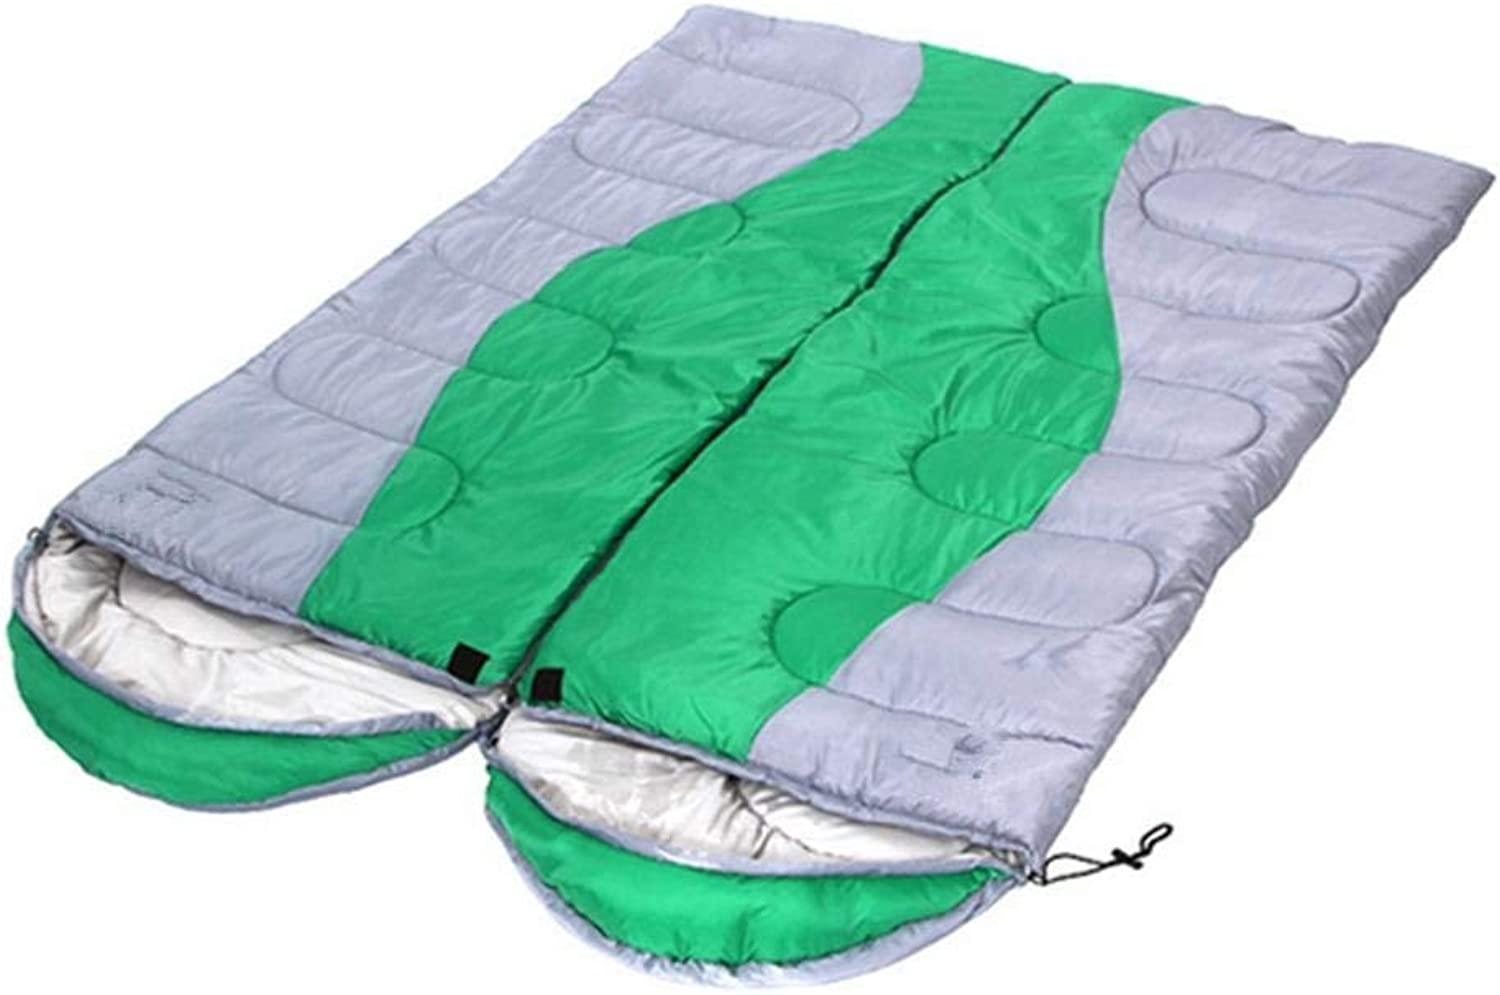 Camping Equipment Sleeping Bag Windproof Warmth Soft Practical Convenient Comfortable Lightweight Outdoor Traveling Camping Sleeping Bag